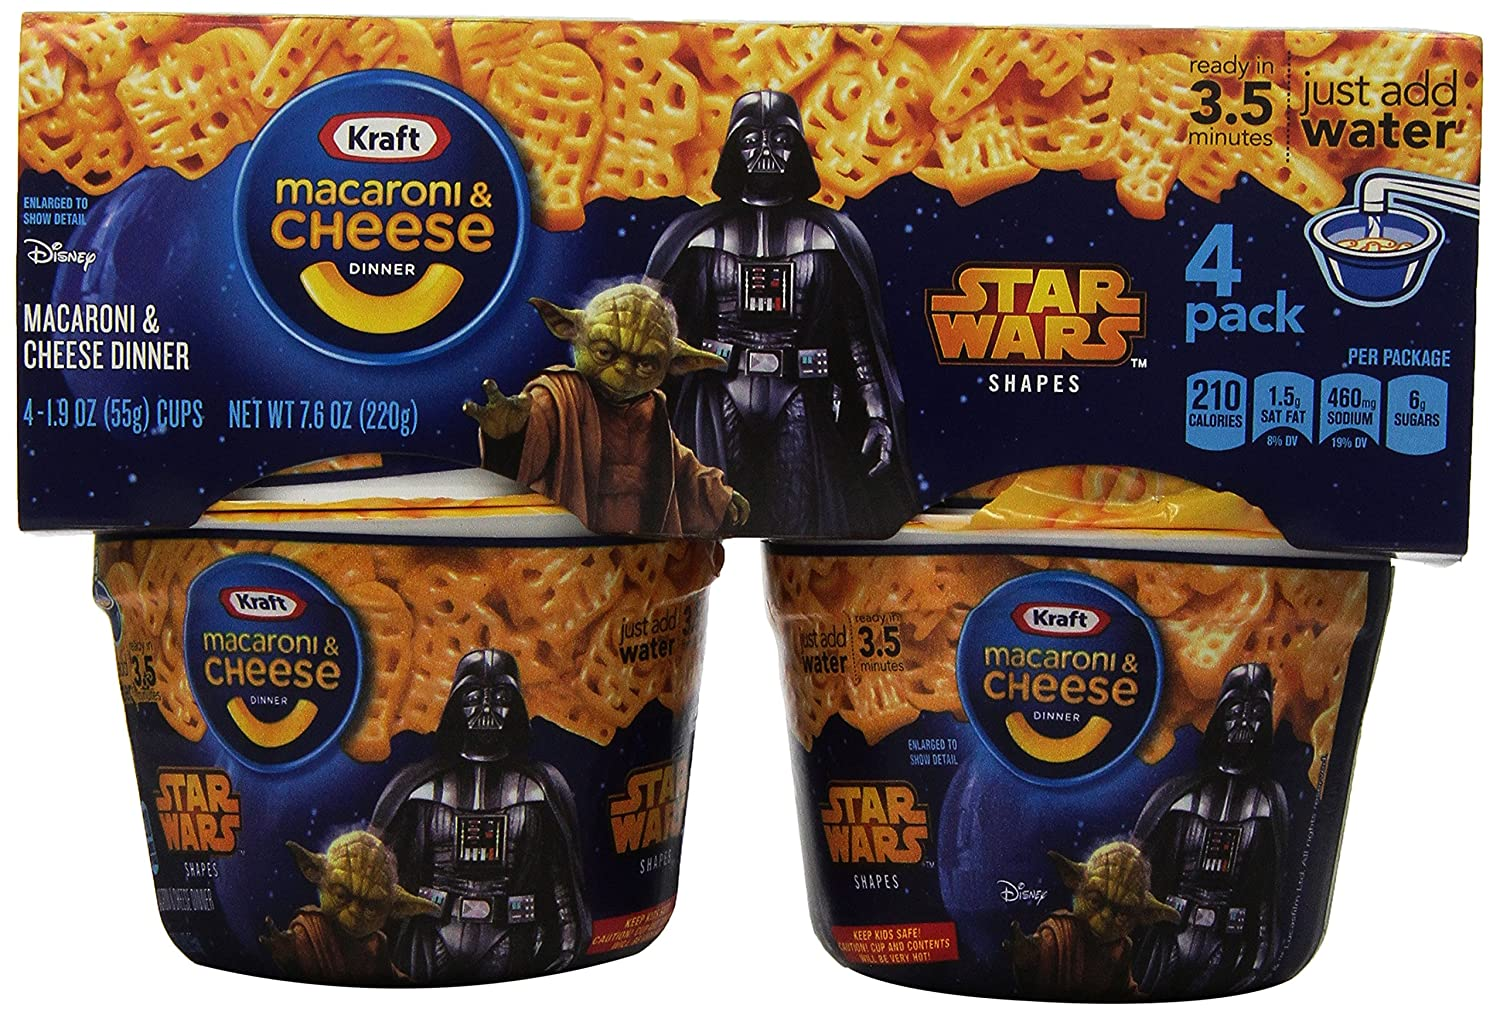 Kraft Easy Mac and Cheese Star Wars Shapes Single Serve Cups, 7.6 Ounce